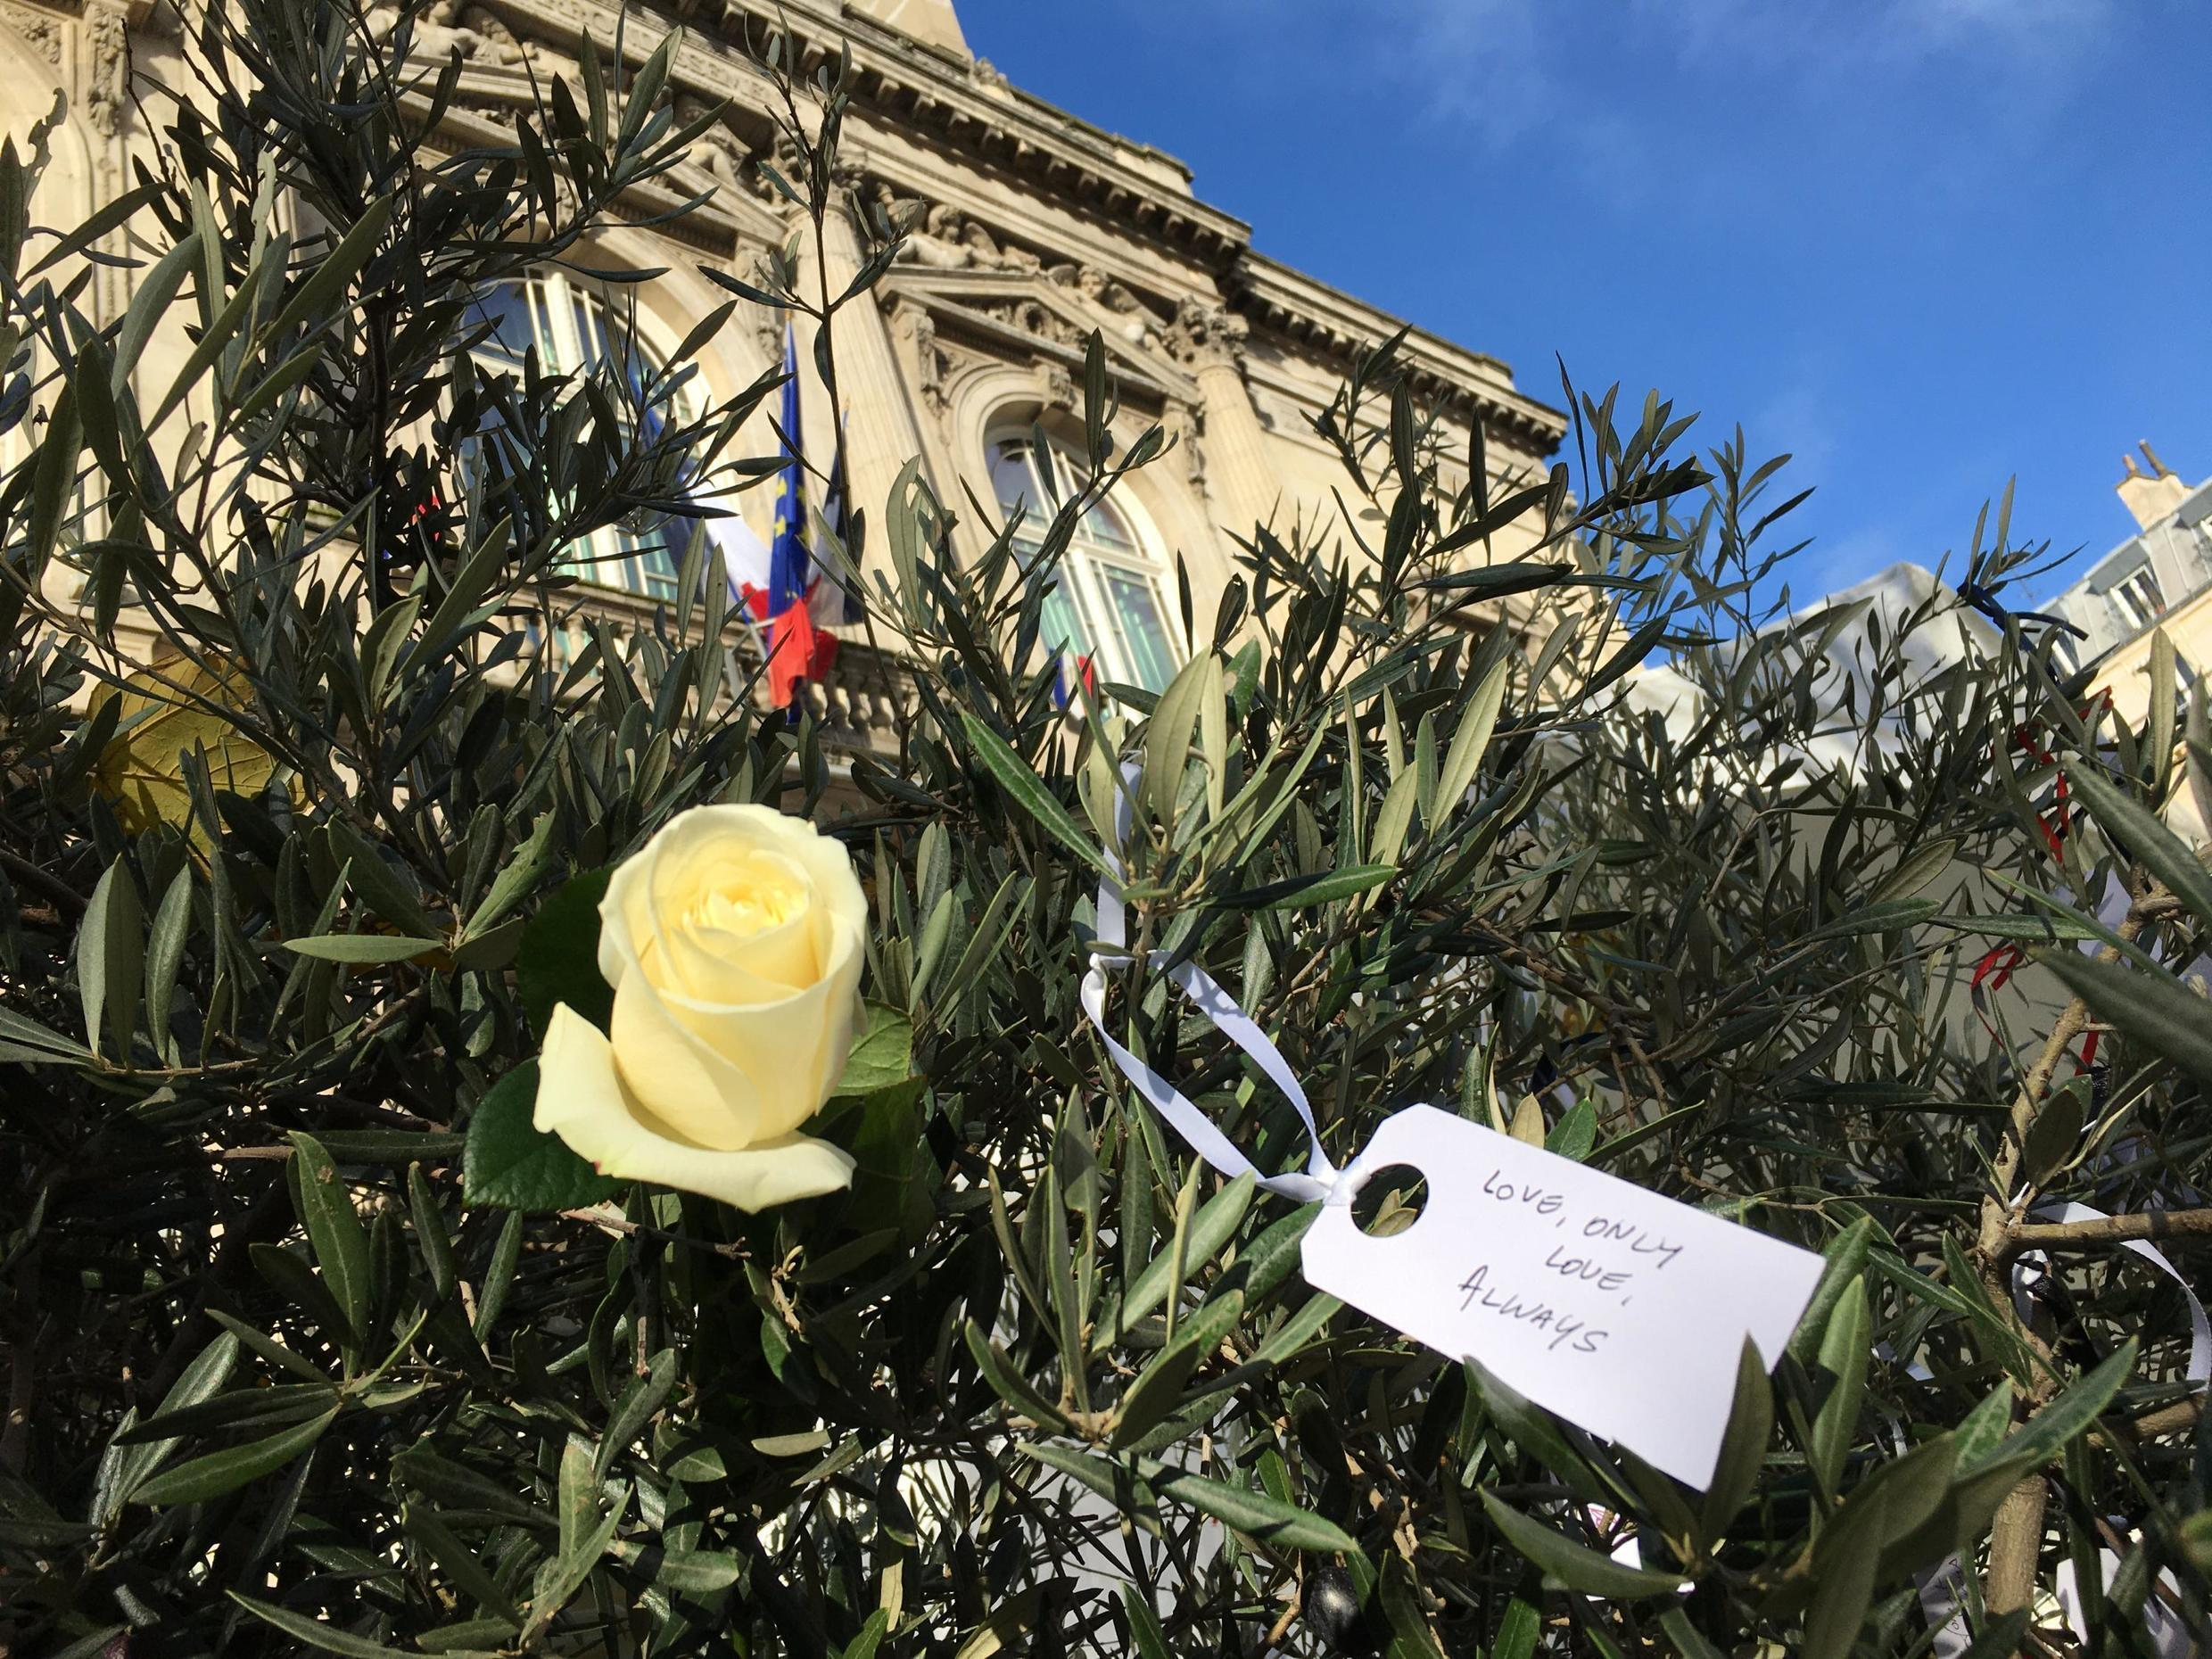 Hundreds of people decorate an olive tree with messages and white roses at a tribute to victims and survivors of 2015 attacks at the Bataclan concert hall, Stade de France stadium and Parisian bars and cafés, 13 November 2019.